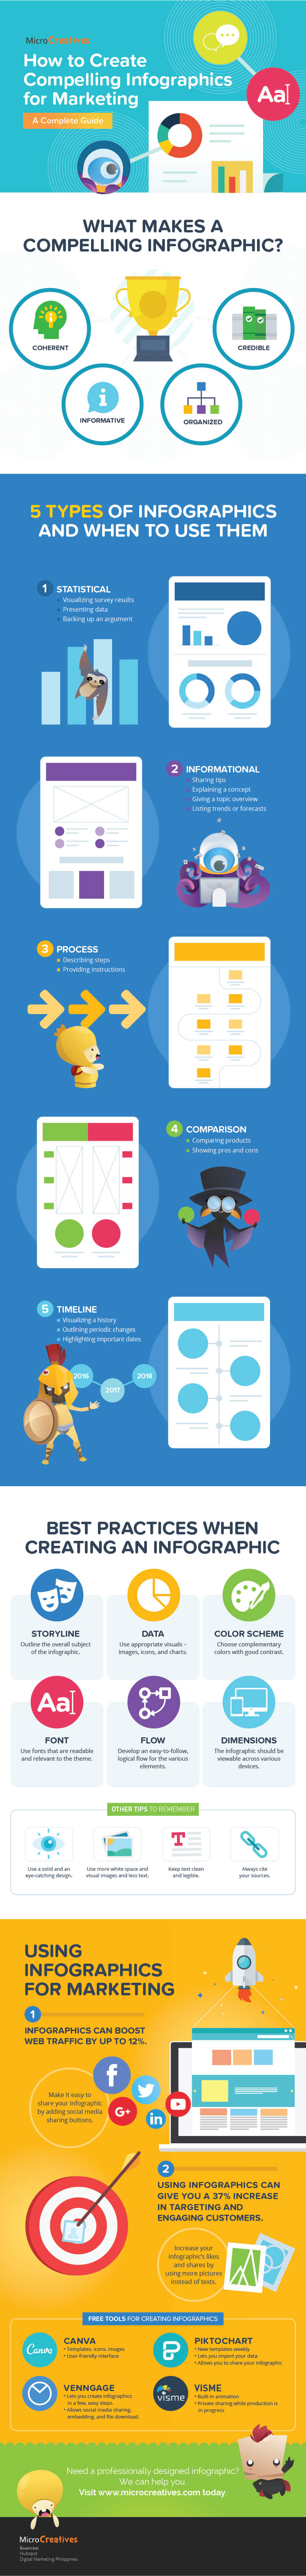 [Infographic] How To Create A Compelling Marketing Infographic 2